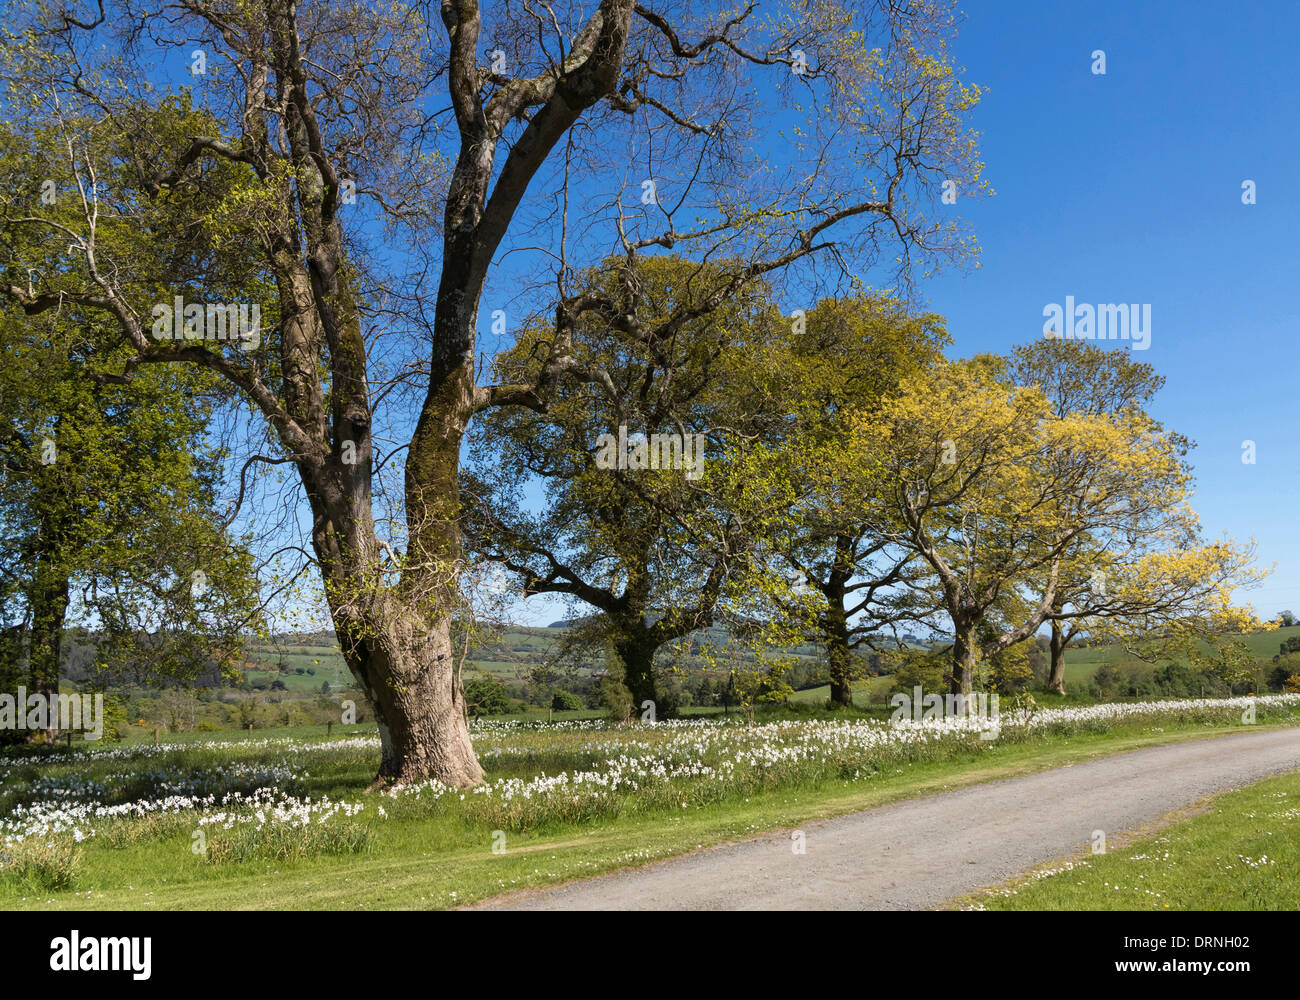 Ash trees in the Irish Countryside, Republic of Ireland, Europe - Stock Image